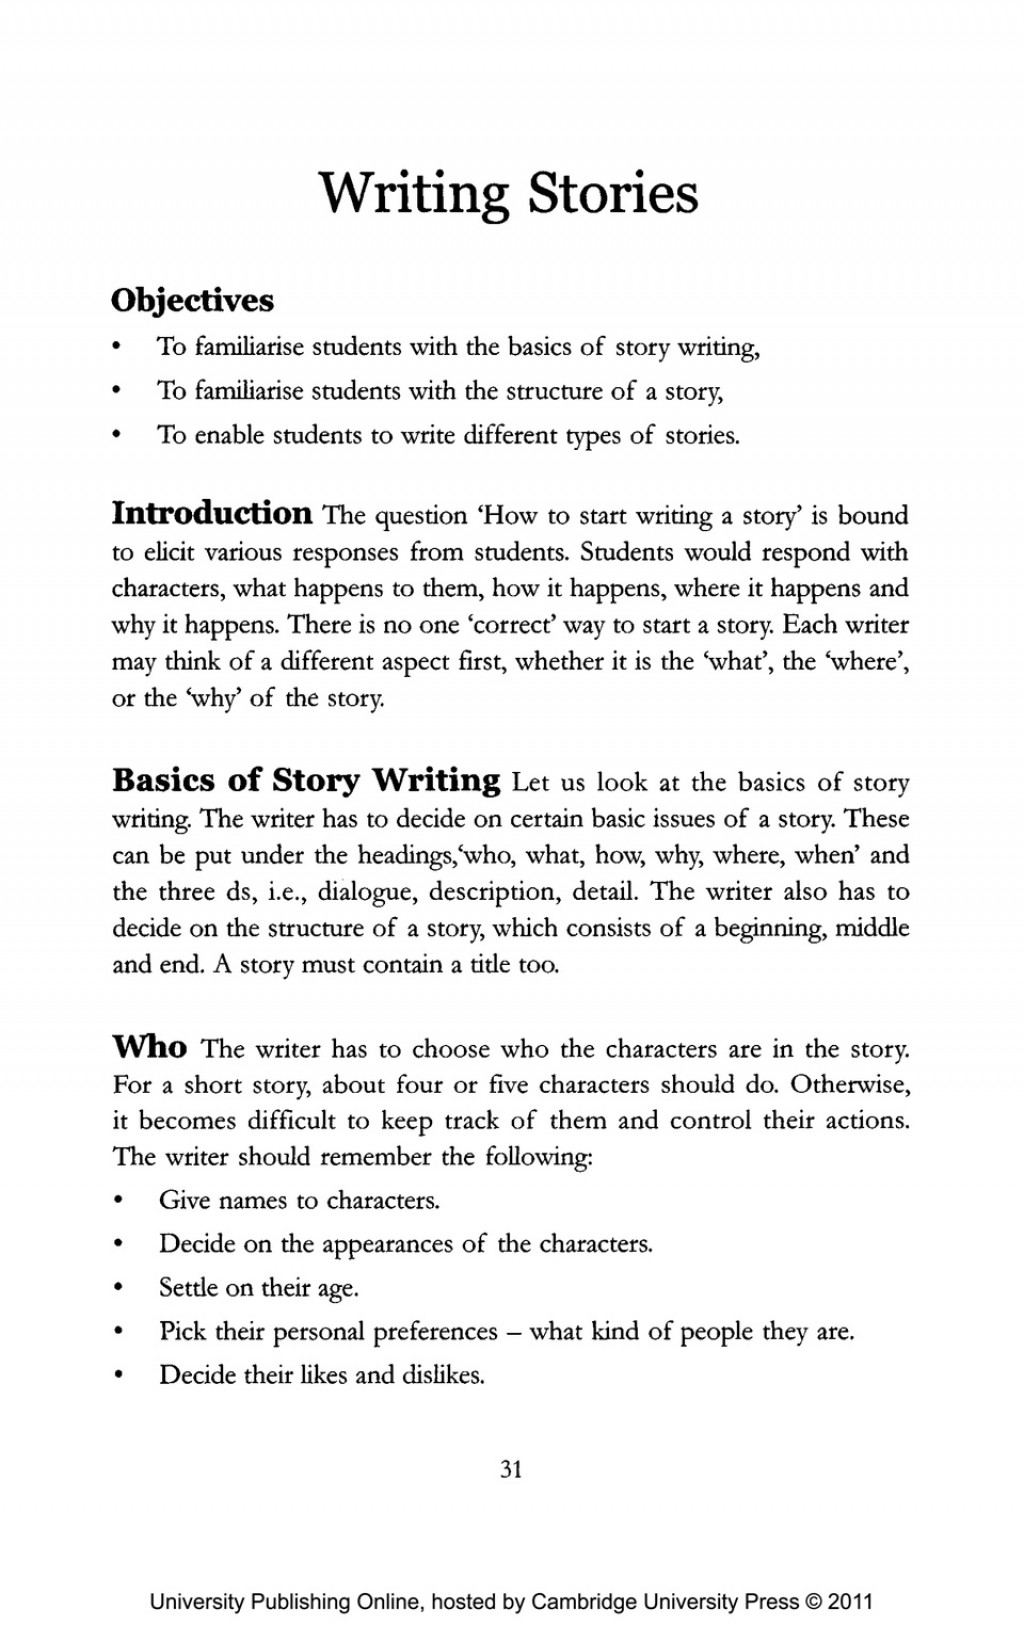 015 Short Stories In Essays Essay Example Dialogue Write Story How To Sample Research Paper 9788175968714c2 Abstrac Comparison An Introduction For Title Good Conclusion The Of Impressive Fiction Analysis Examples Format Large